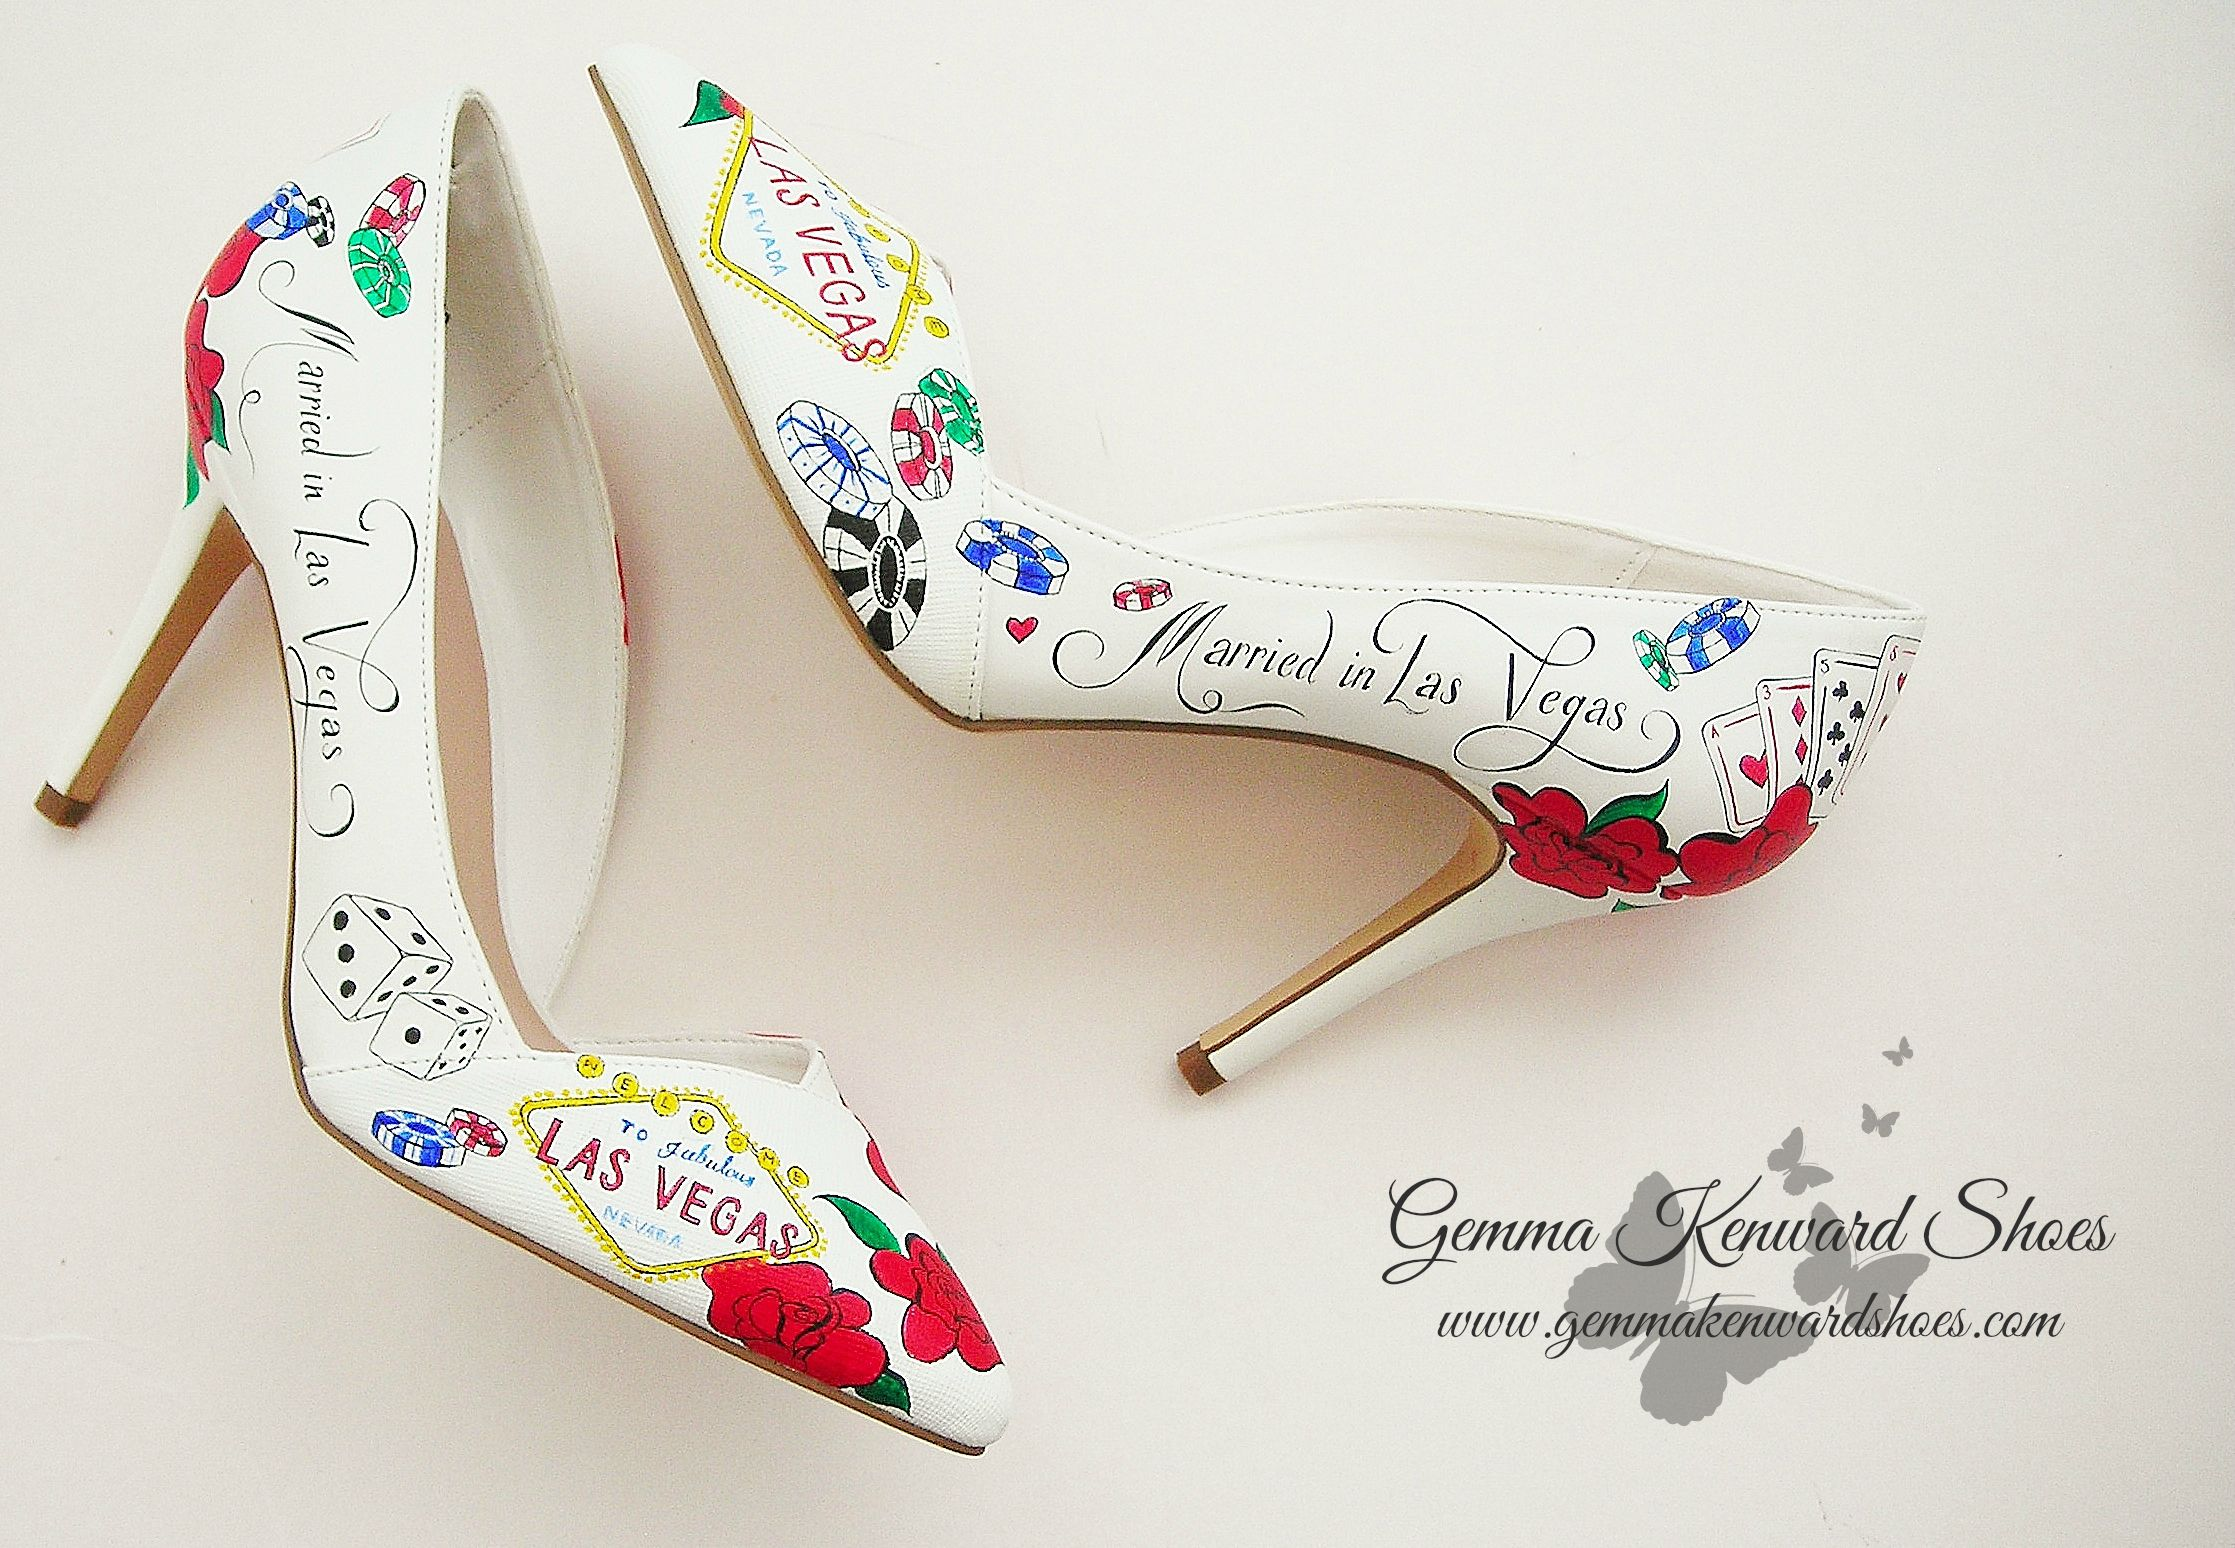 Hand Painted Las Vegas Bridal Shoes - with playing cards, dice and gambling chips.